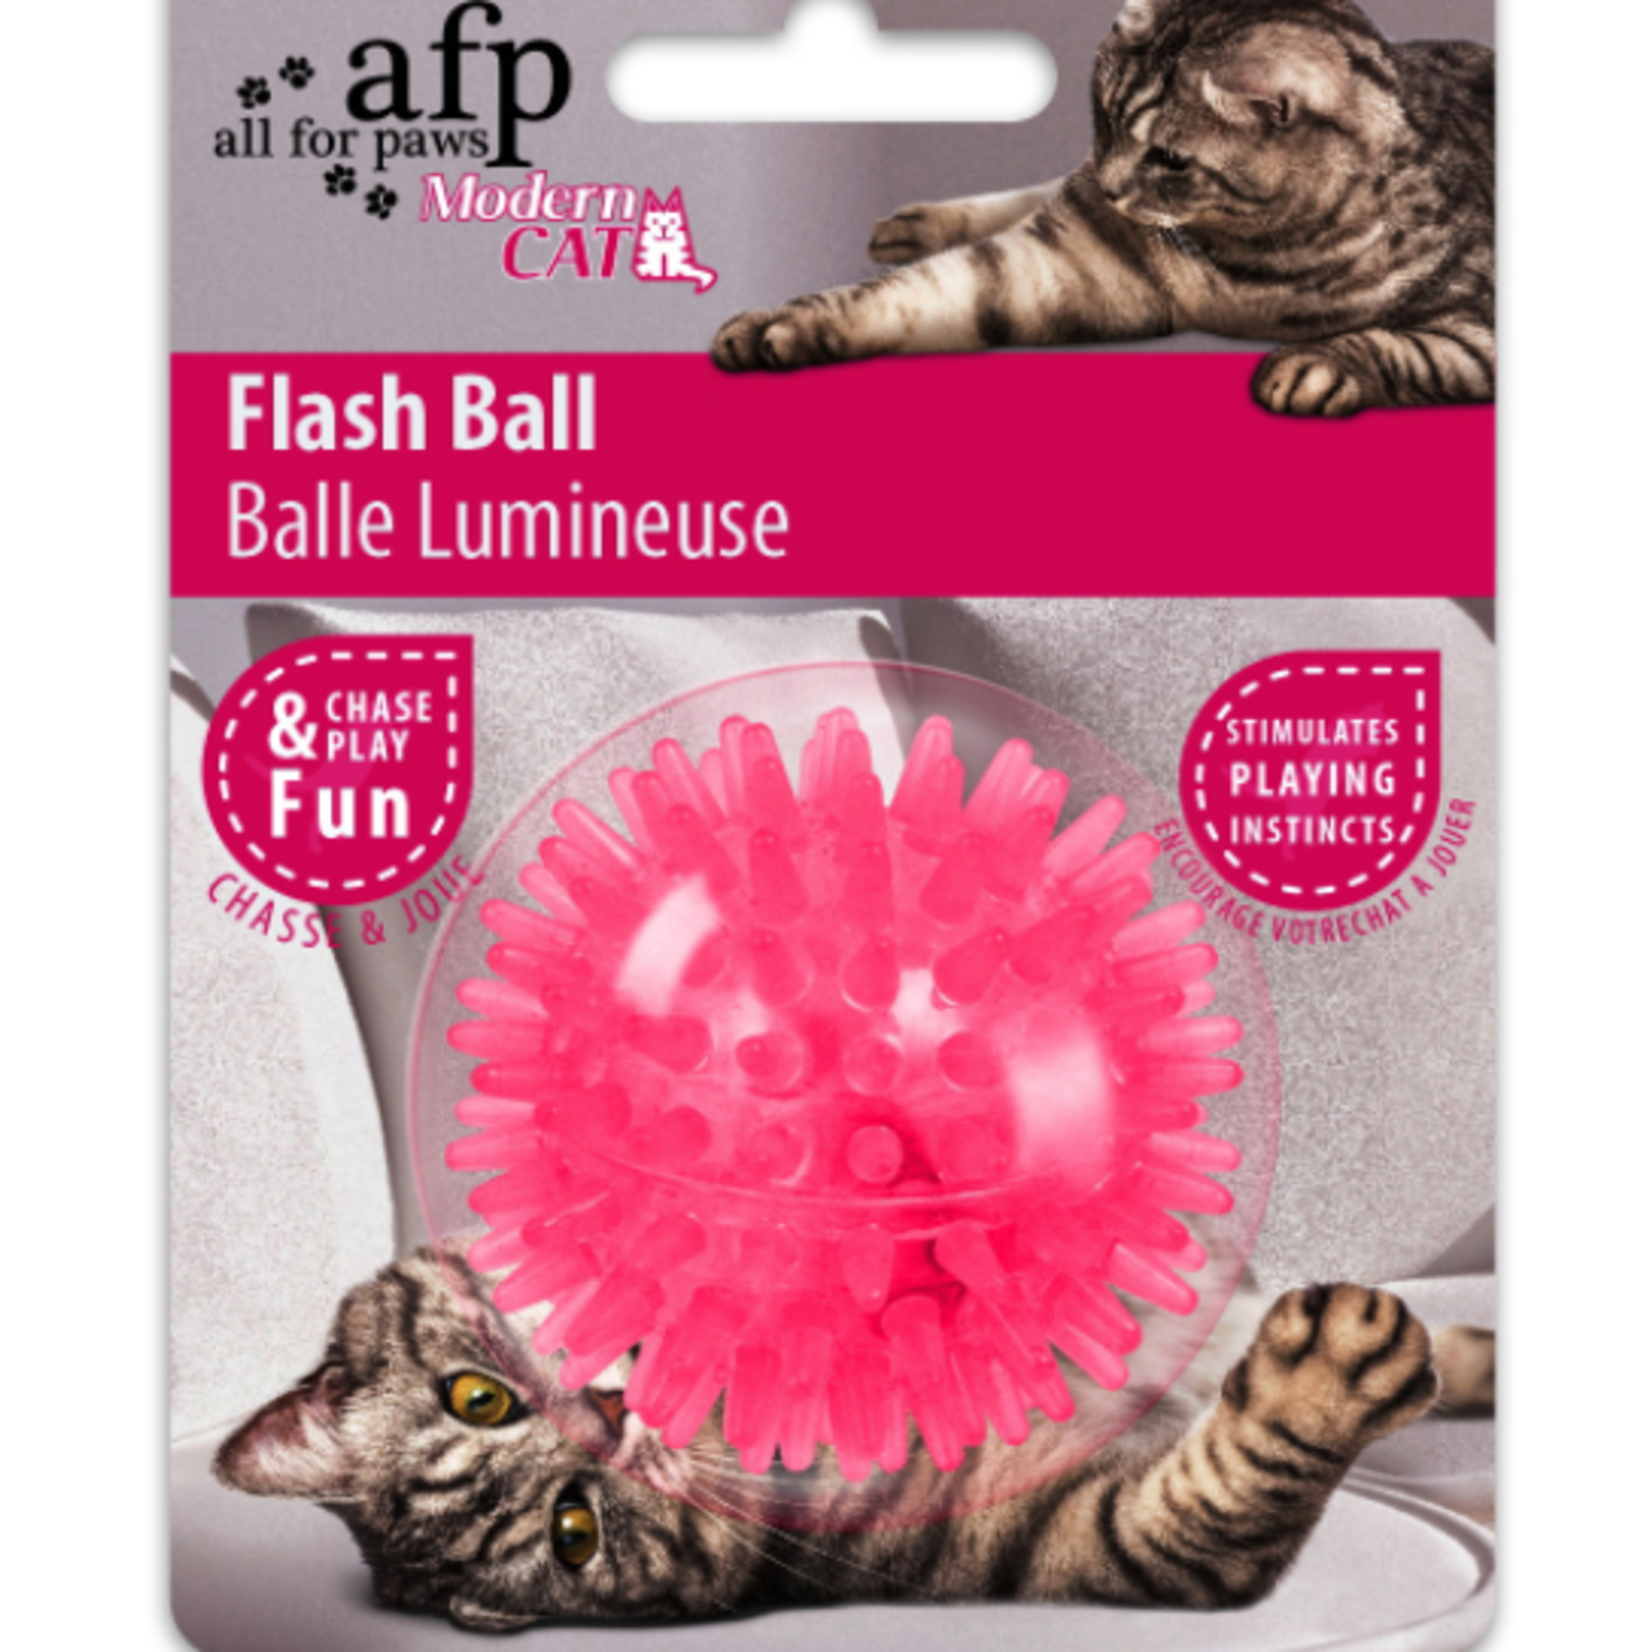 All for paws Balle éclair chat moderne